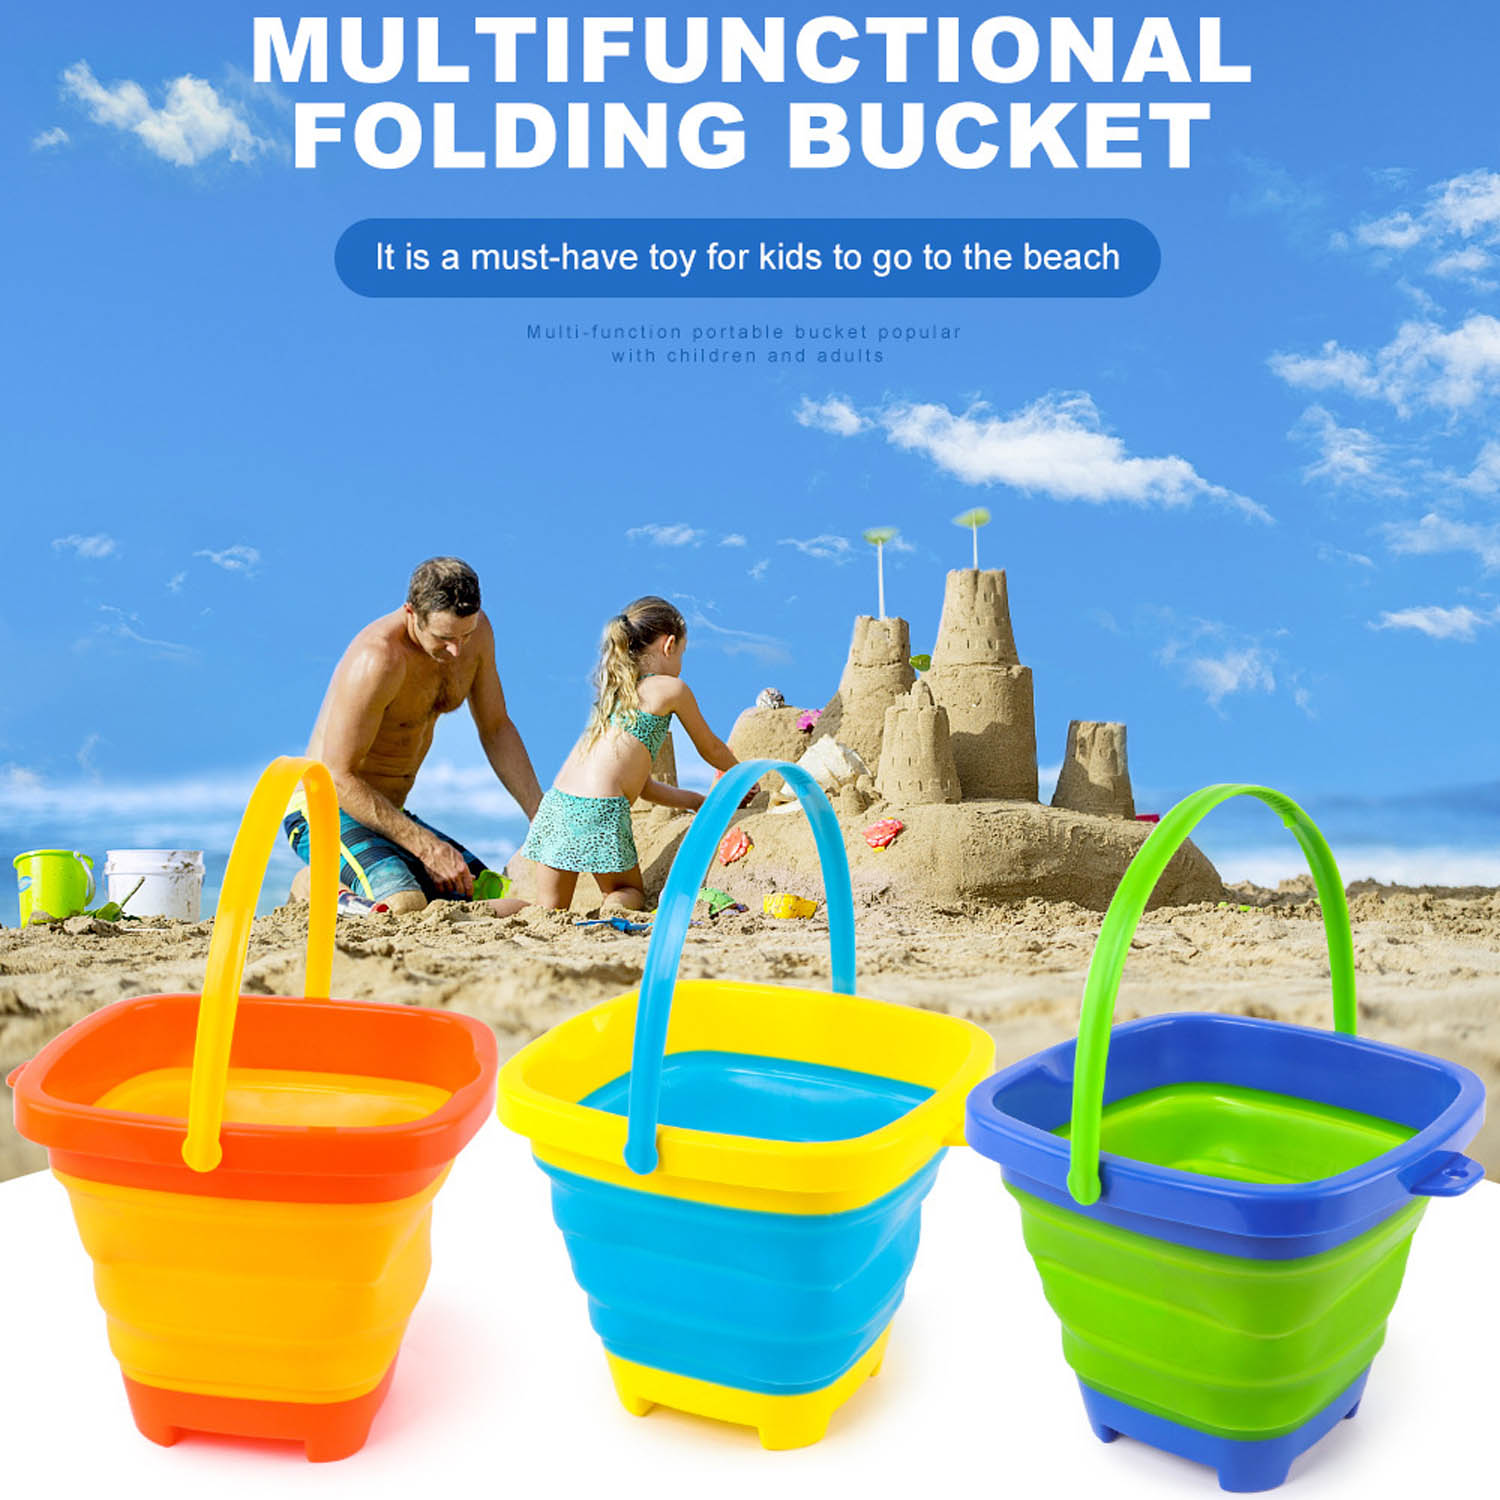 Portable Foldable Silicone Bucket For Travel Camping Picnic Hiking Mounting Driving Outdoor Survival Tool Water Container